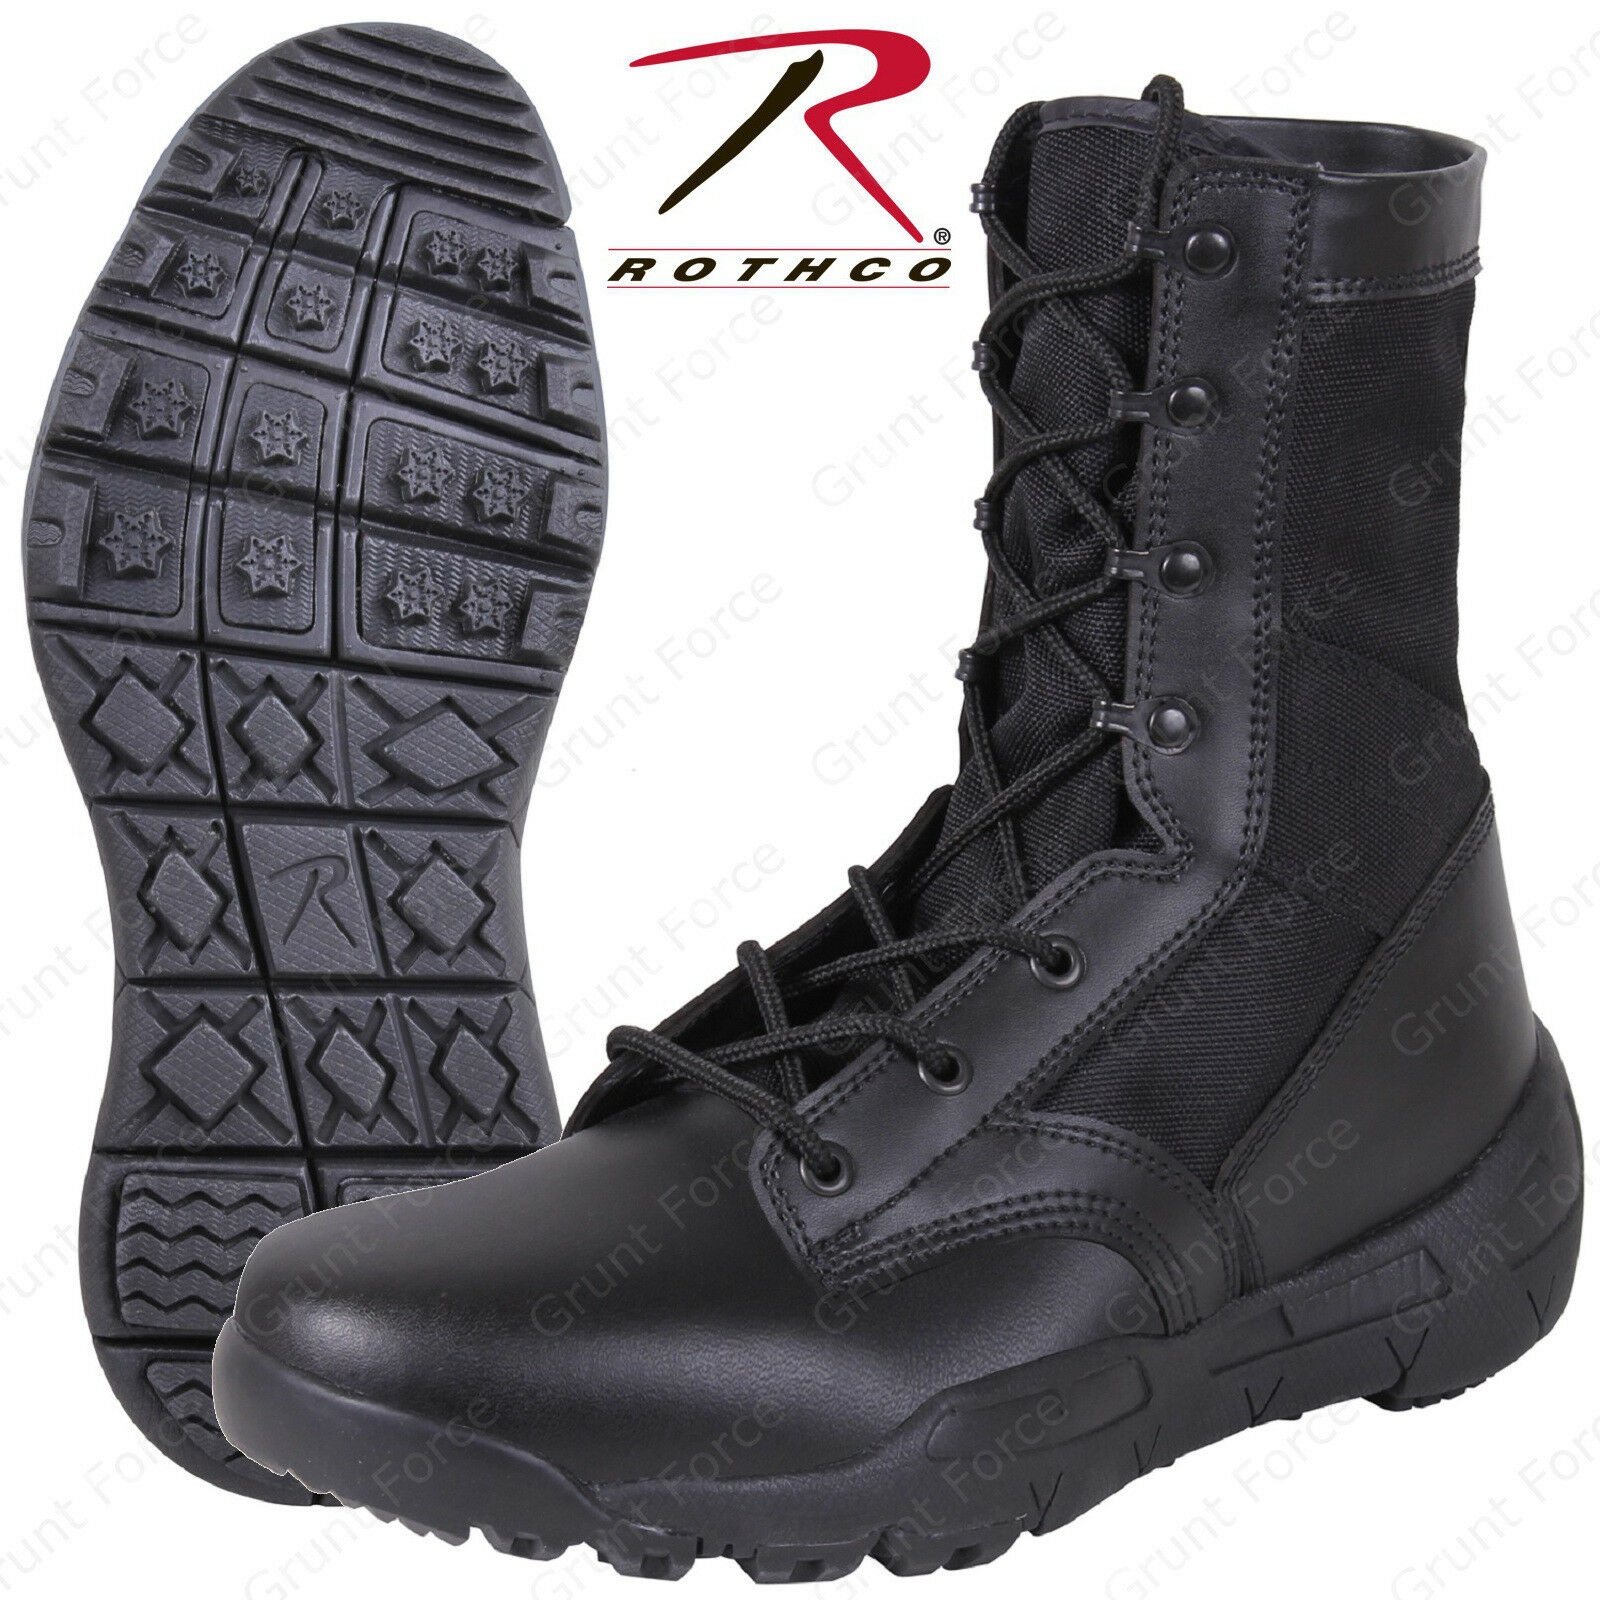 Lightweight V-Max Tactical Boots - Rothco Black 8.5